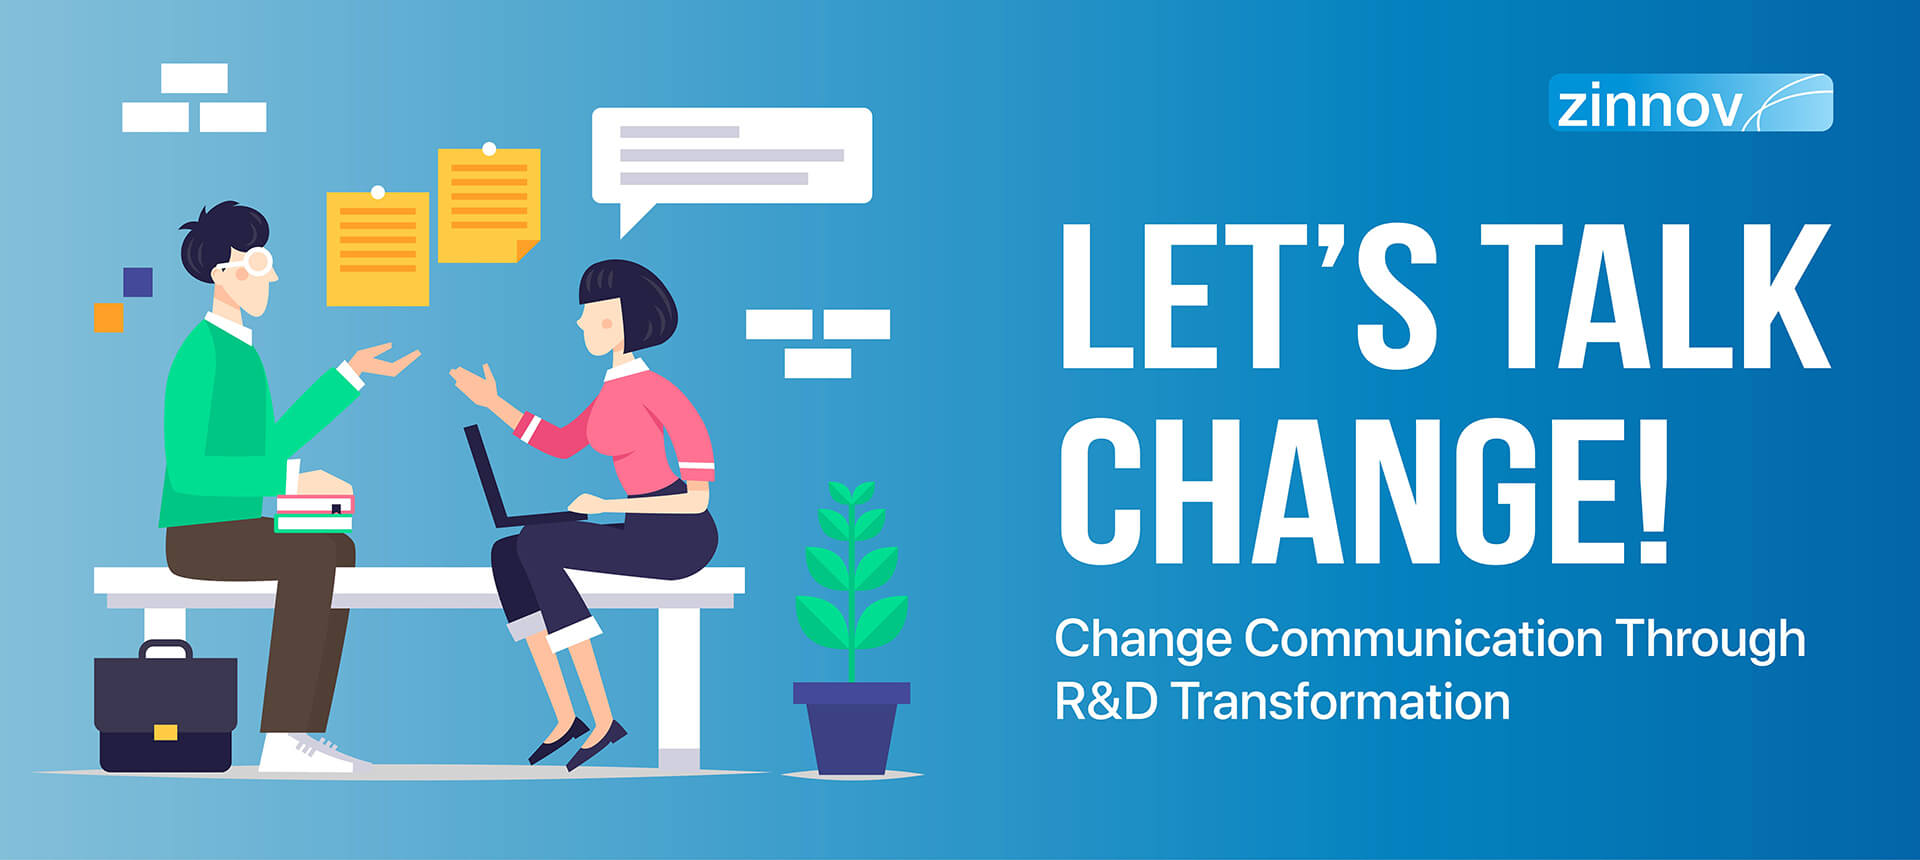 Change Communication Through R&D Transformation